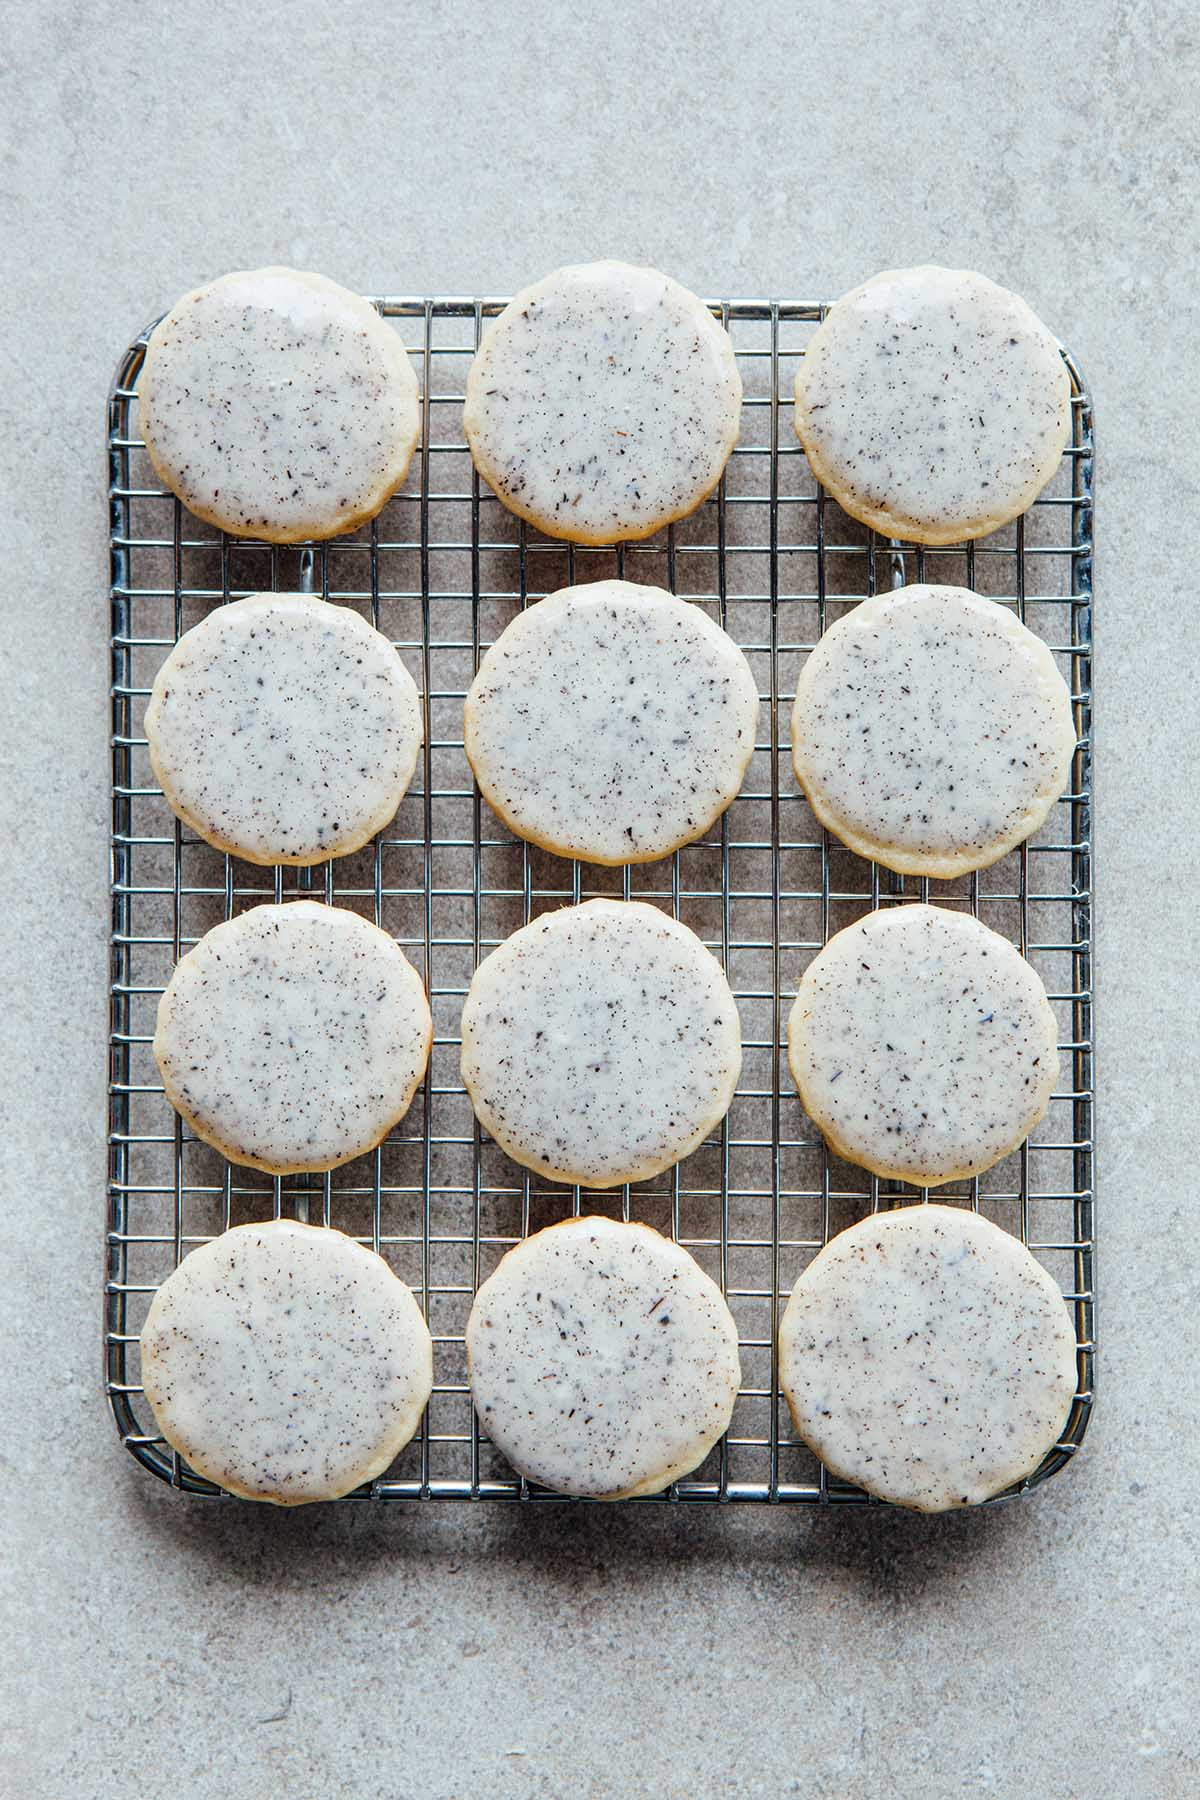 Lavender sugar cookies cooling on a rack.